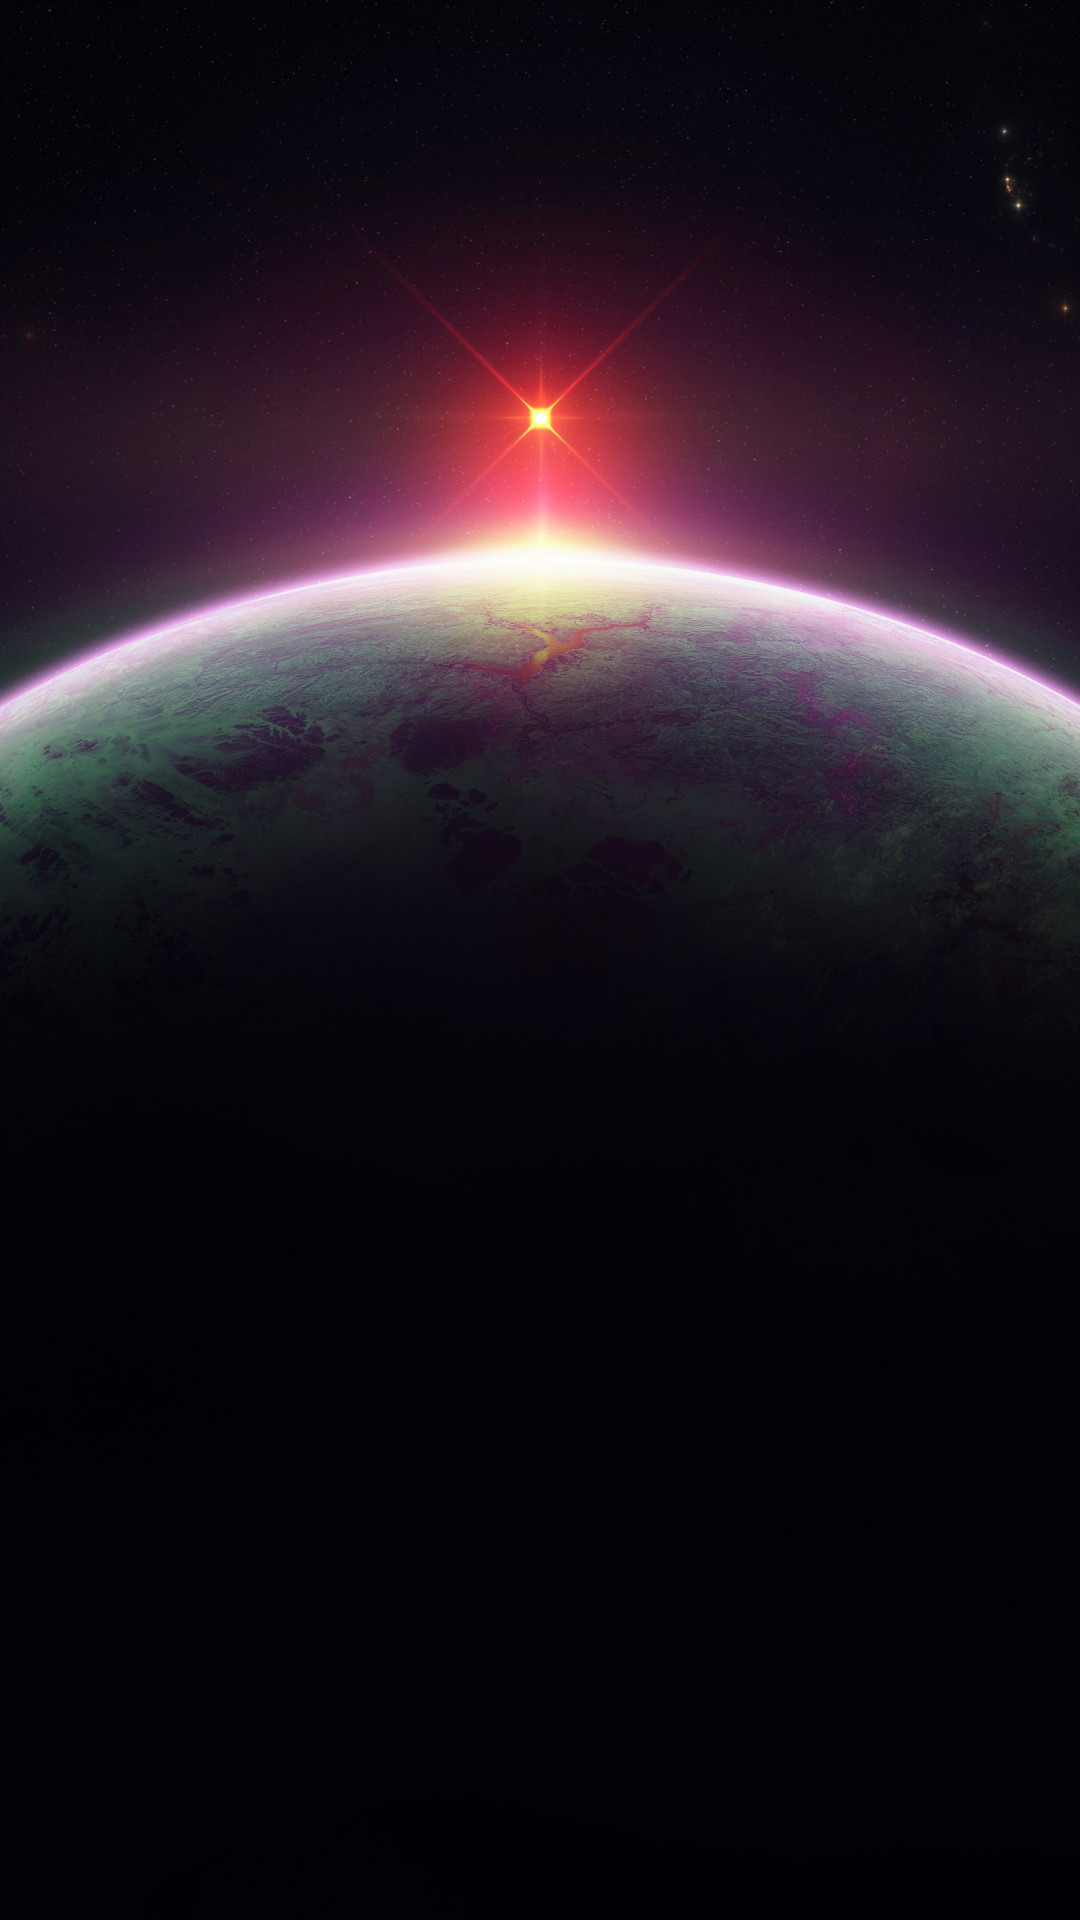 Digital art: Viribs world wallpaper 1080x1920